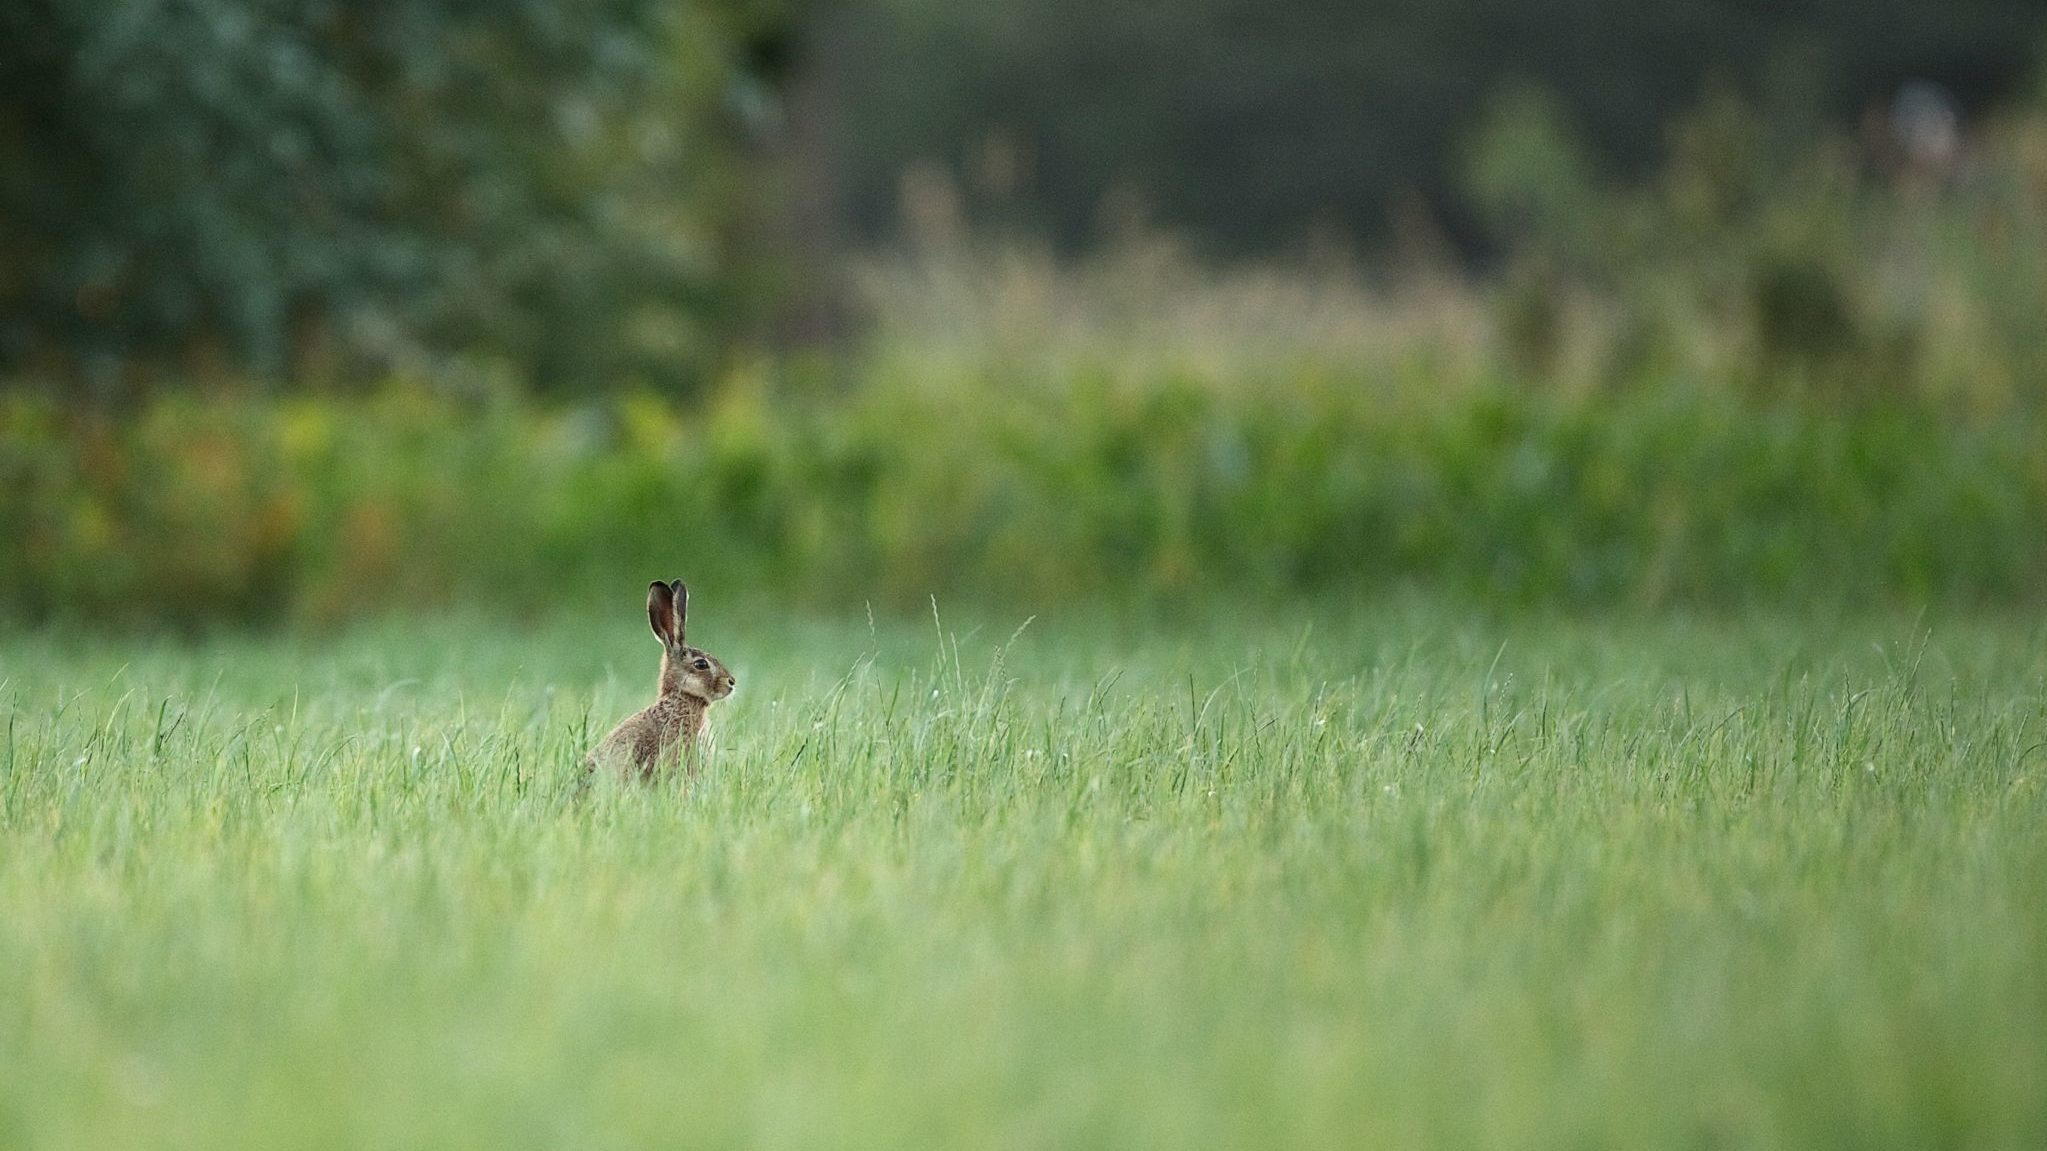 A hare in a tall grass field